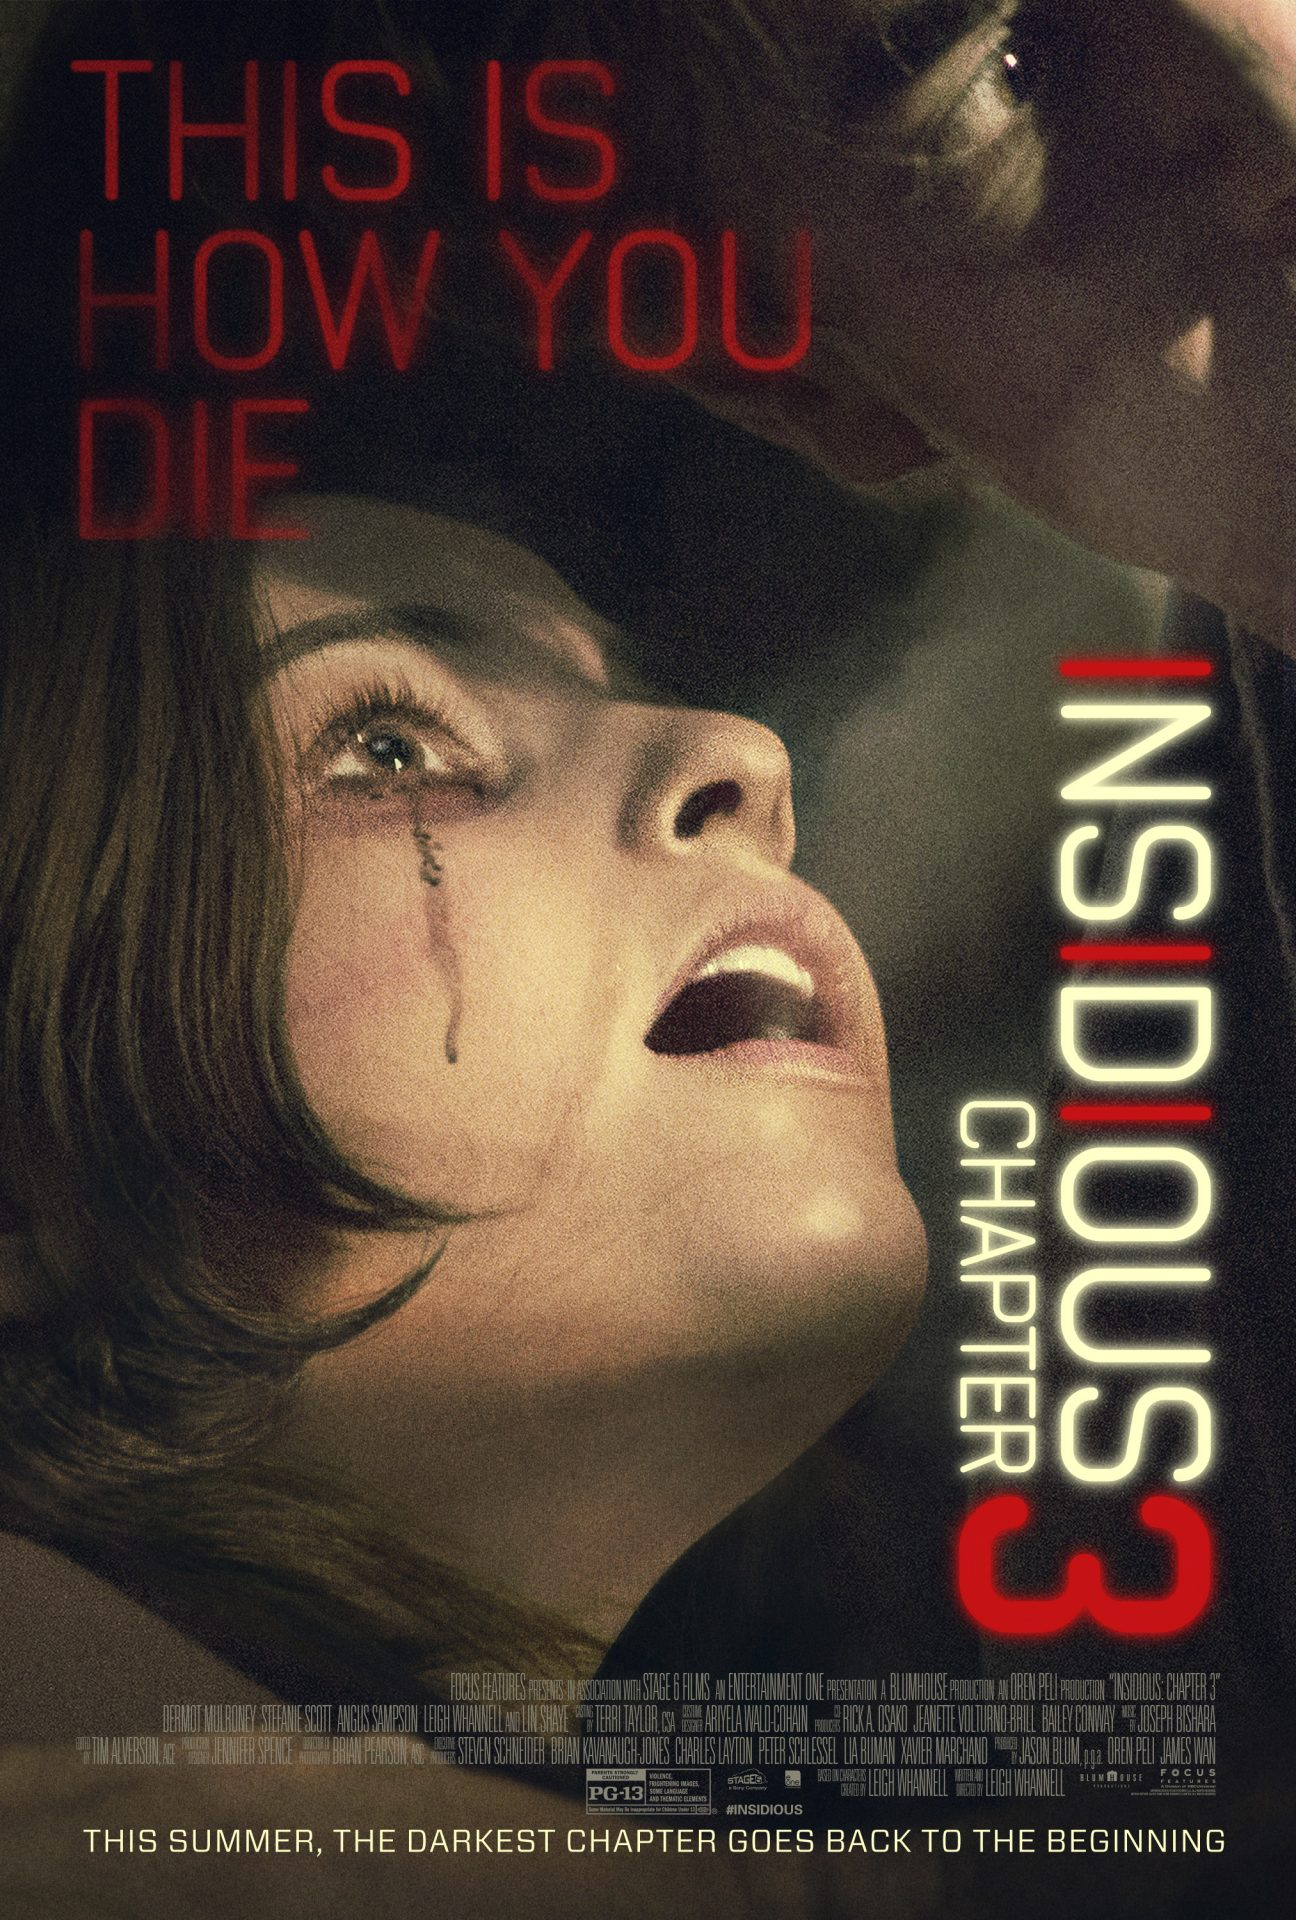 Lin Shaye Turns Up The Creepy In New Tease Of 'Insidious Chapter 3'